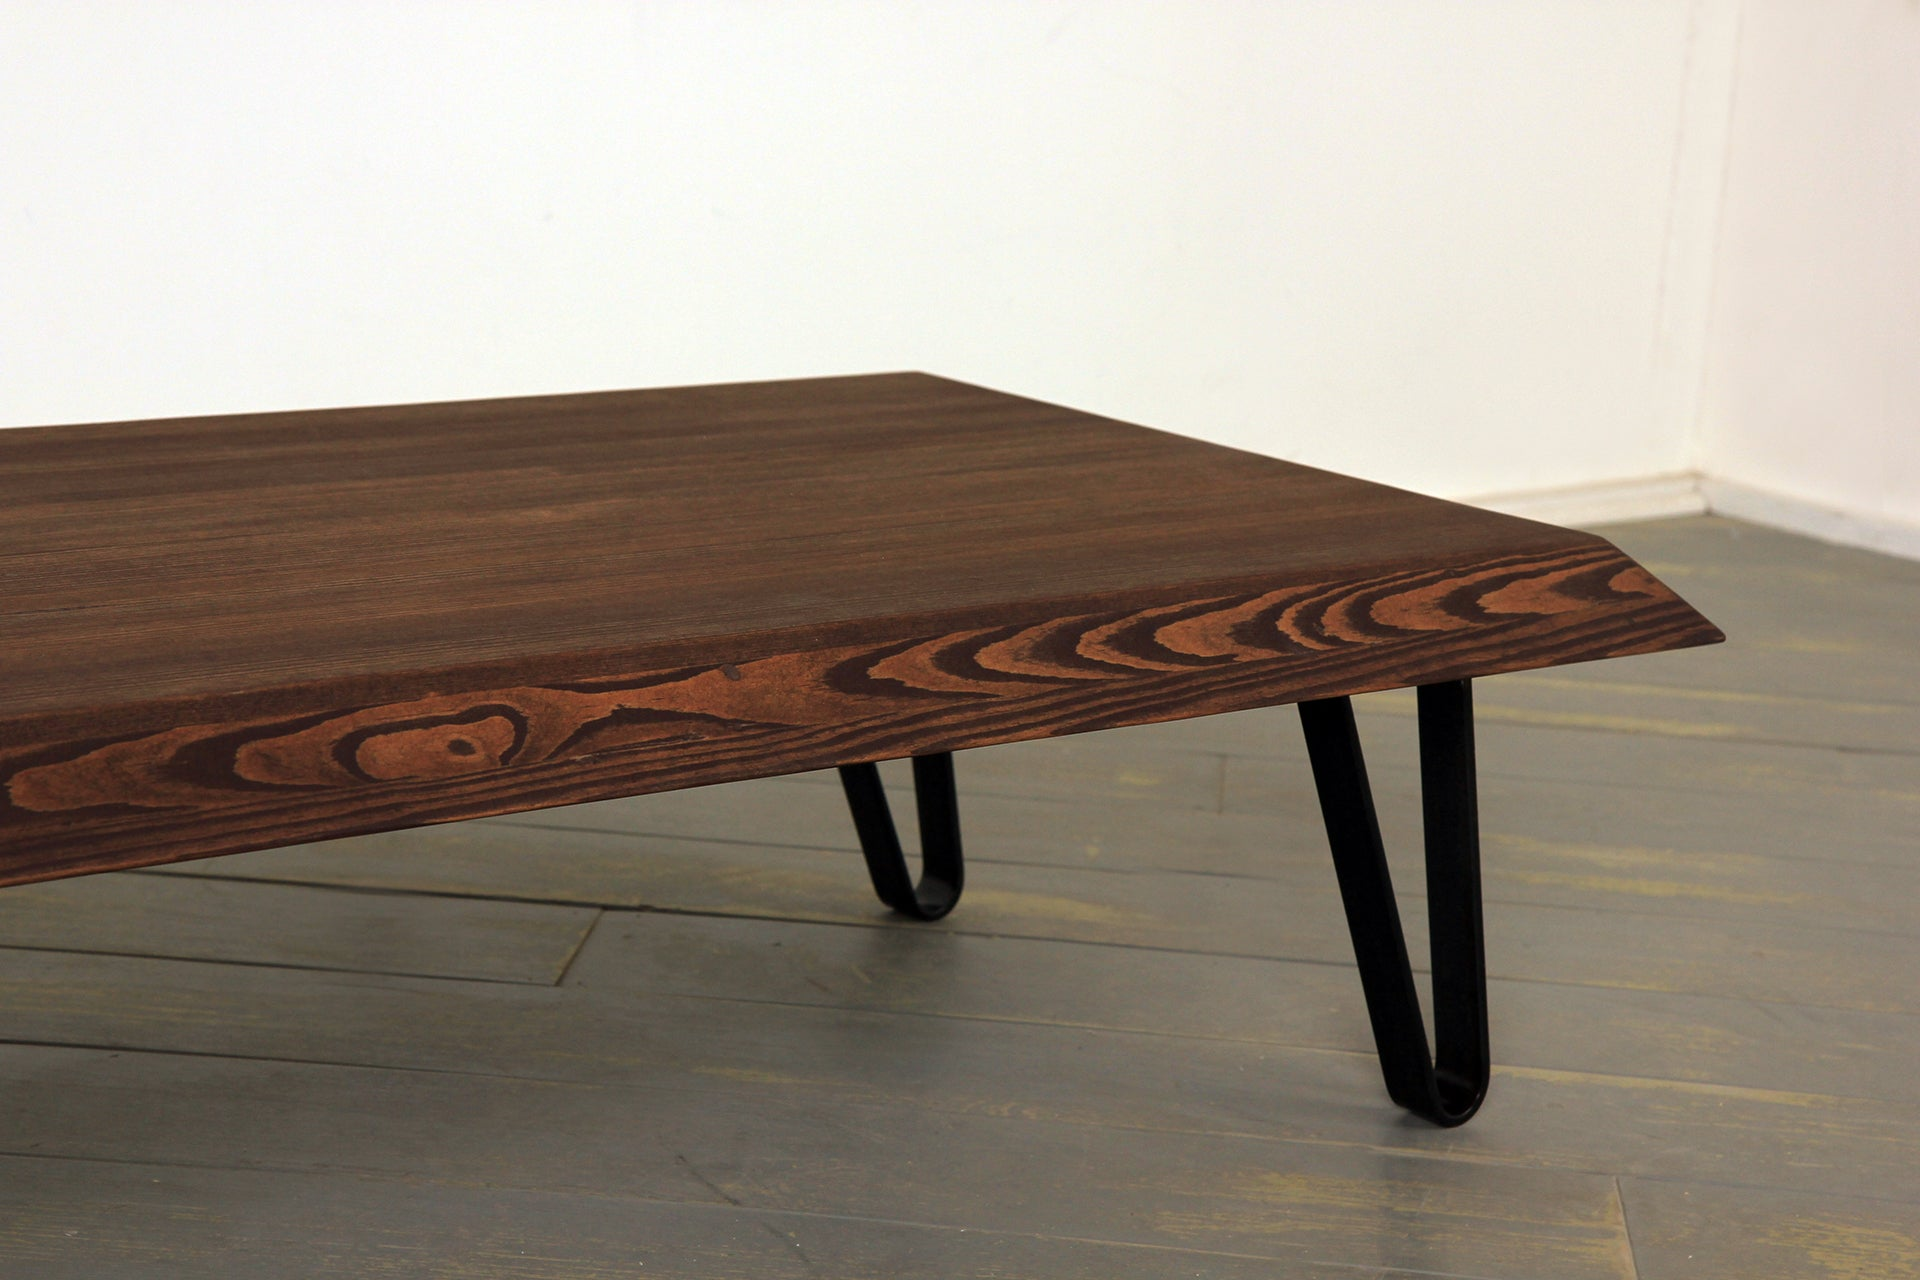 The Bevelled Coffee Table in Chocojava and Clear Coat